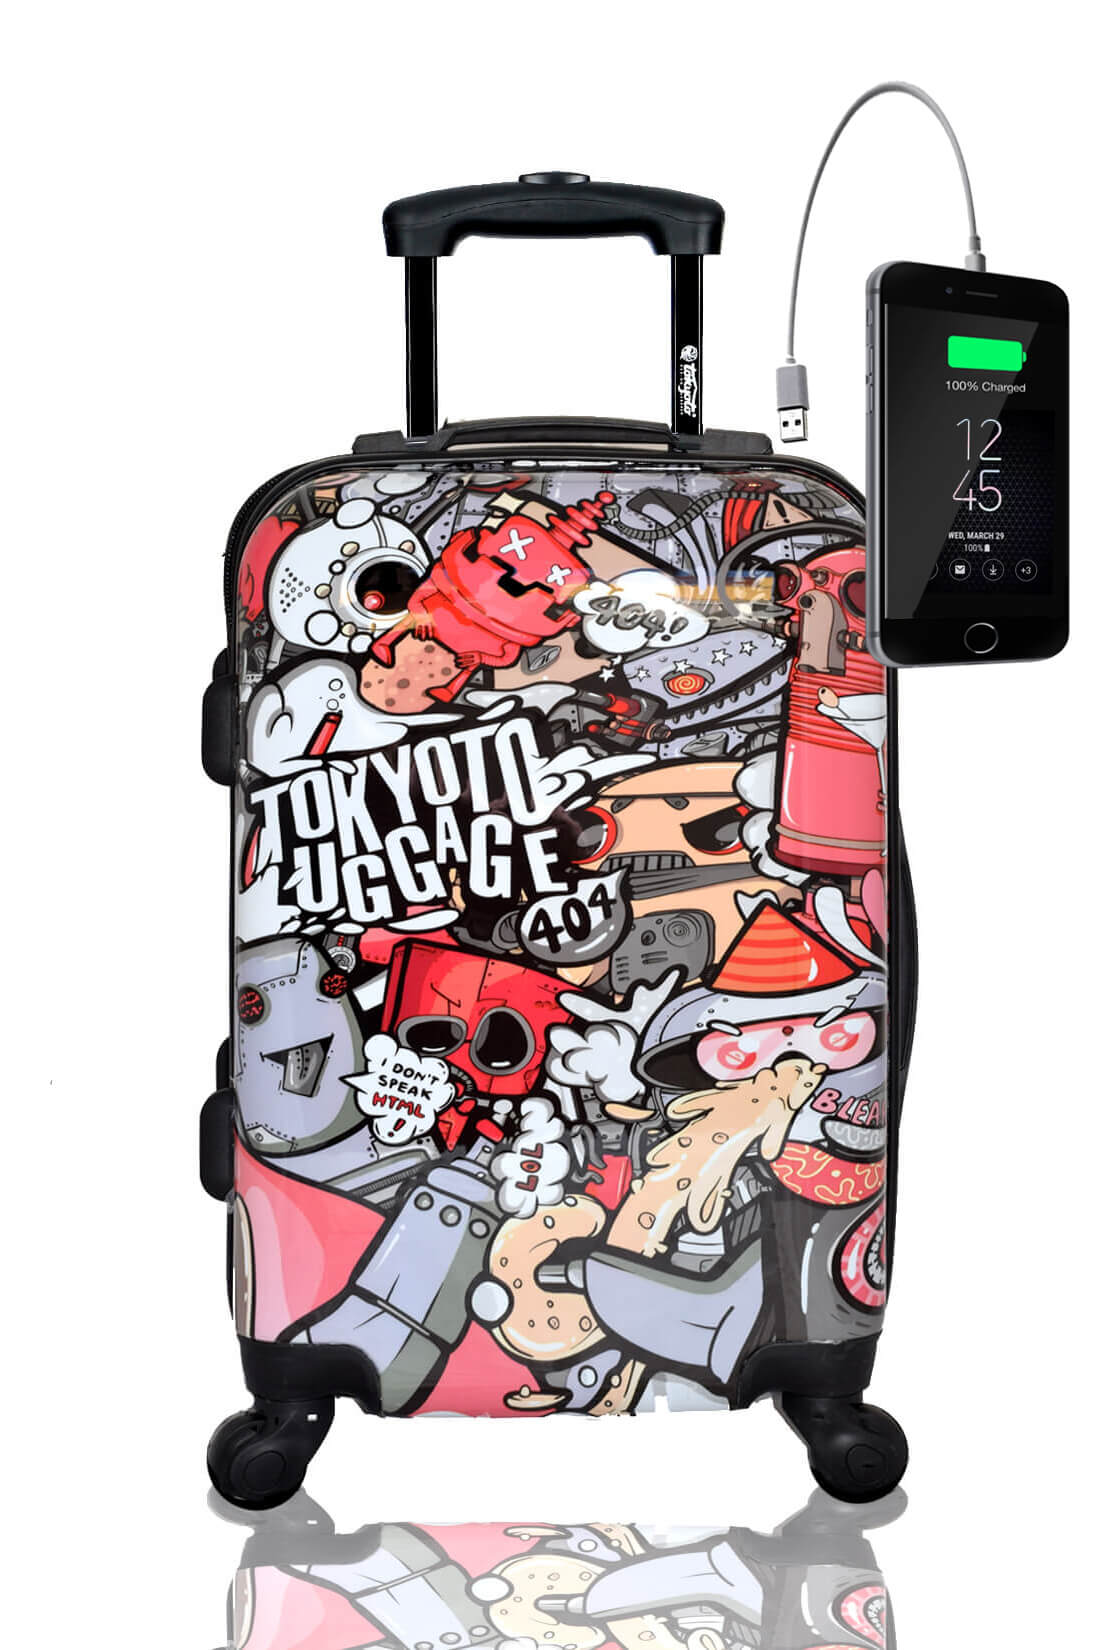 Valise Rigide Online Cabine Trolley Enfant TOKYOTO LUGGAGE Modelle PARTY ROBOTS